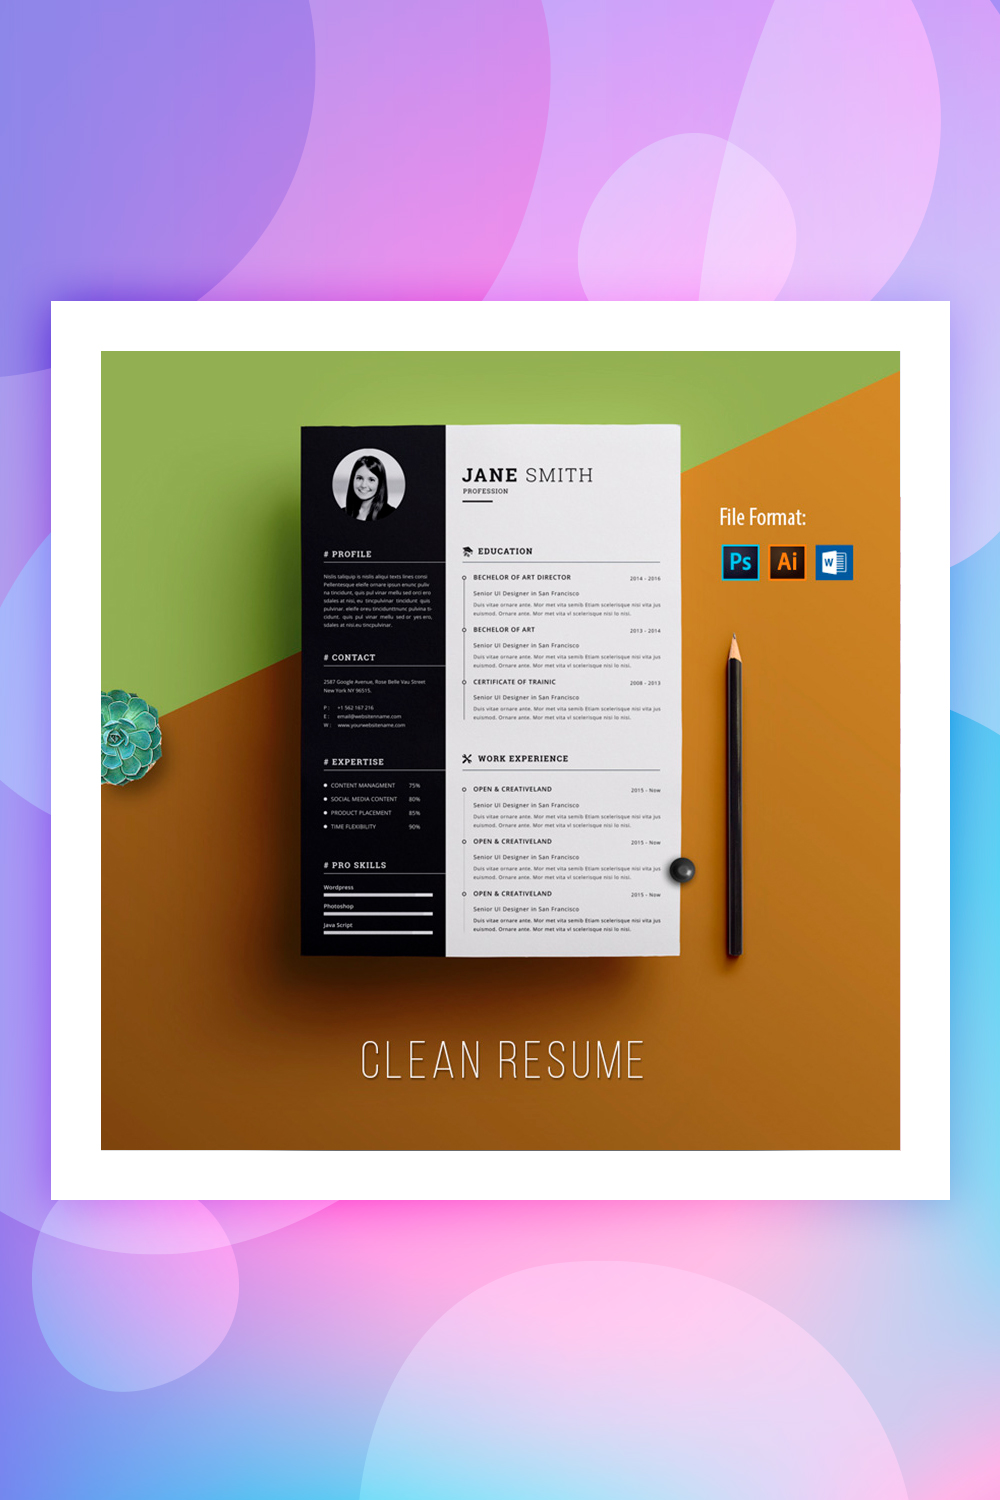 Clean & Creative Jane Smith Resume Template